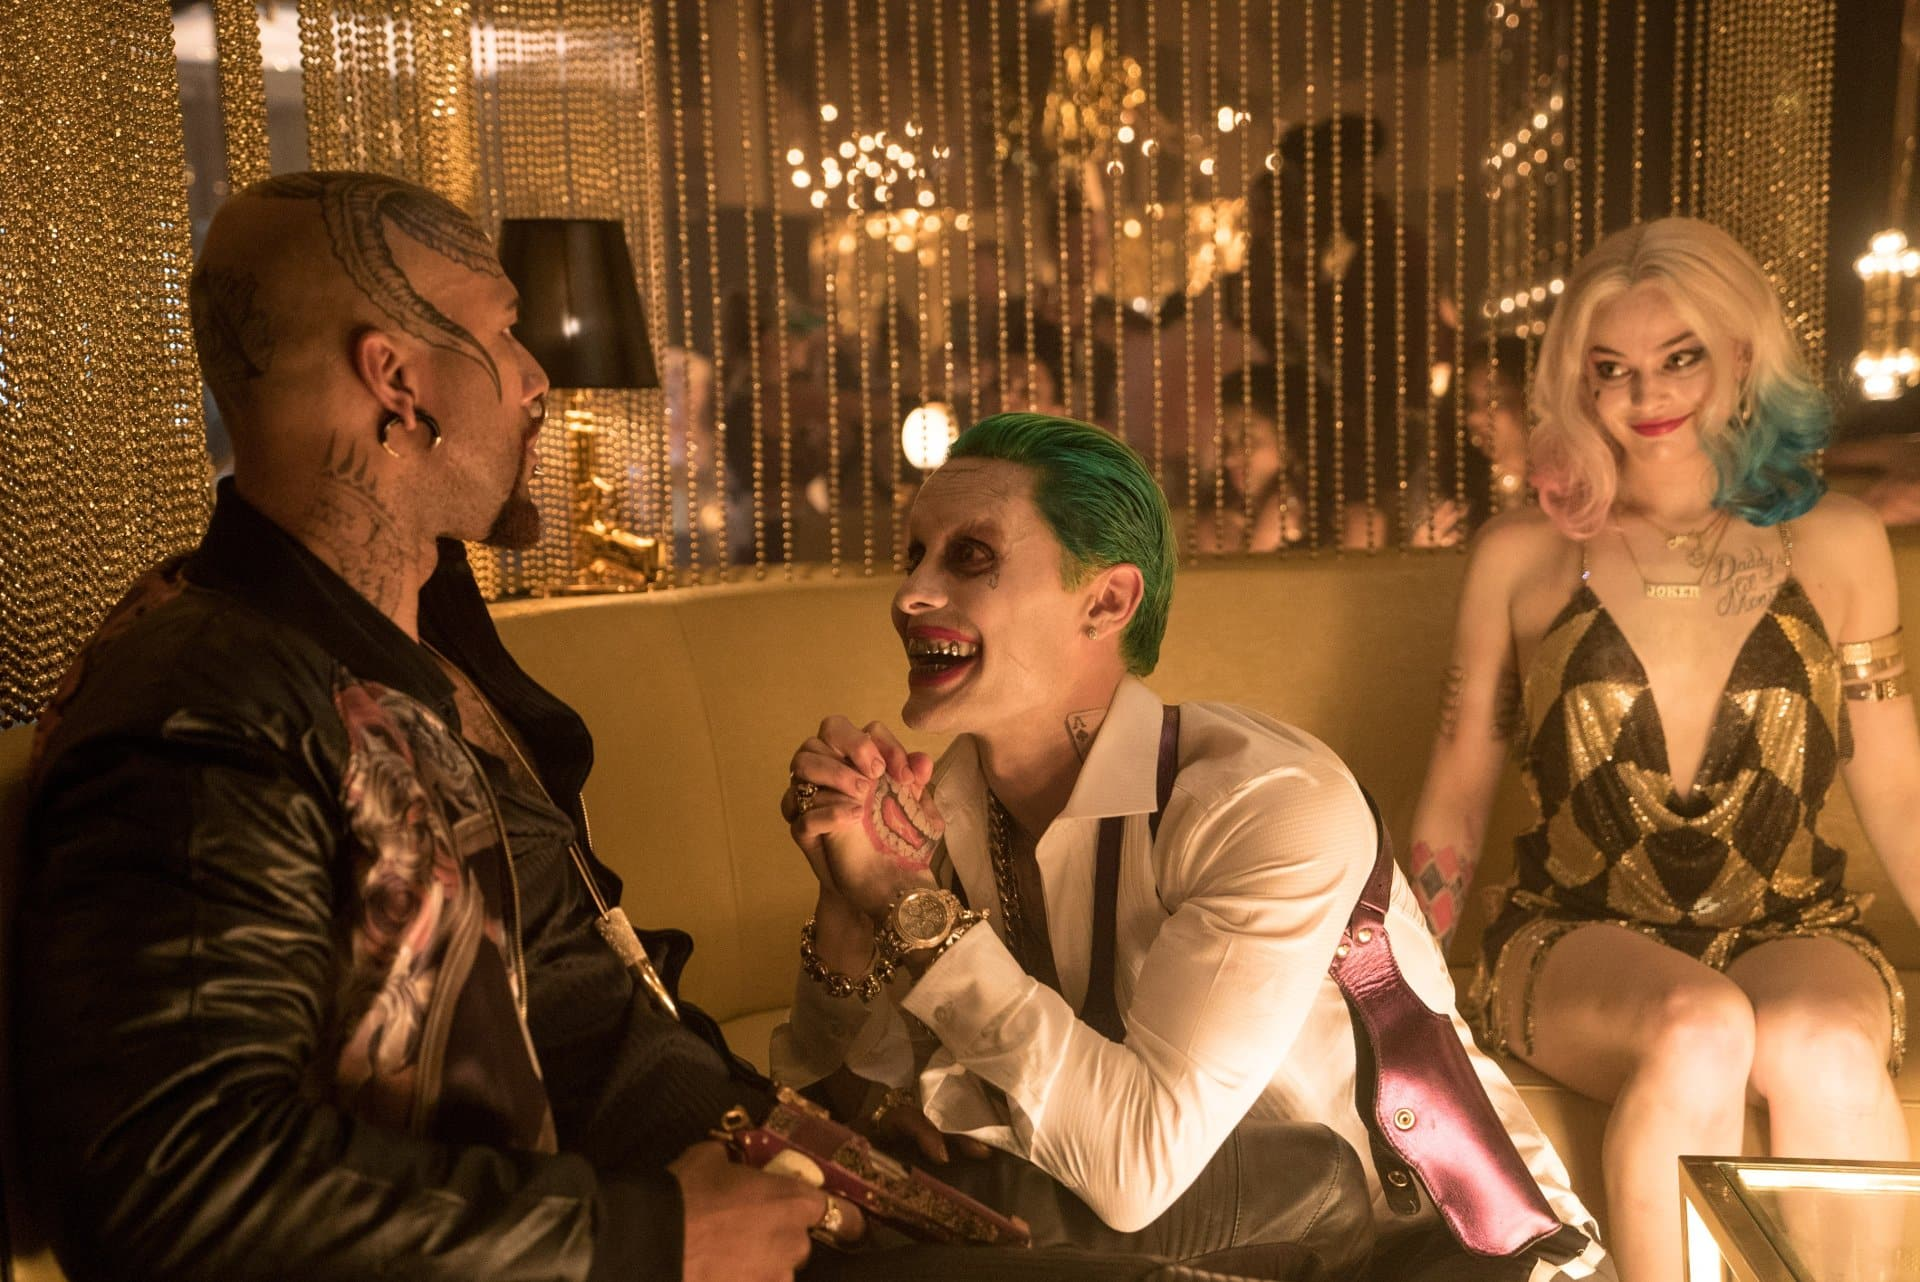 Jared Leto Will Be Reprising The Role Of Joker For One Last Time!